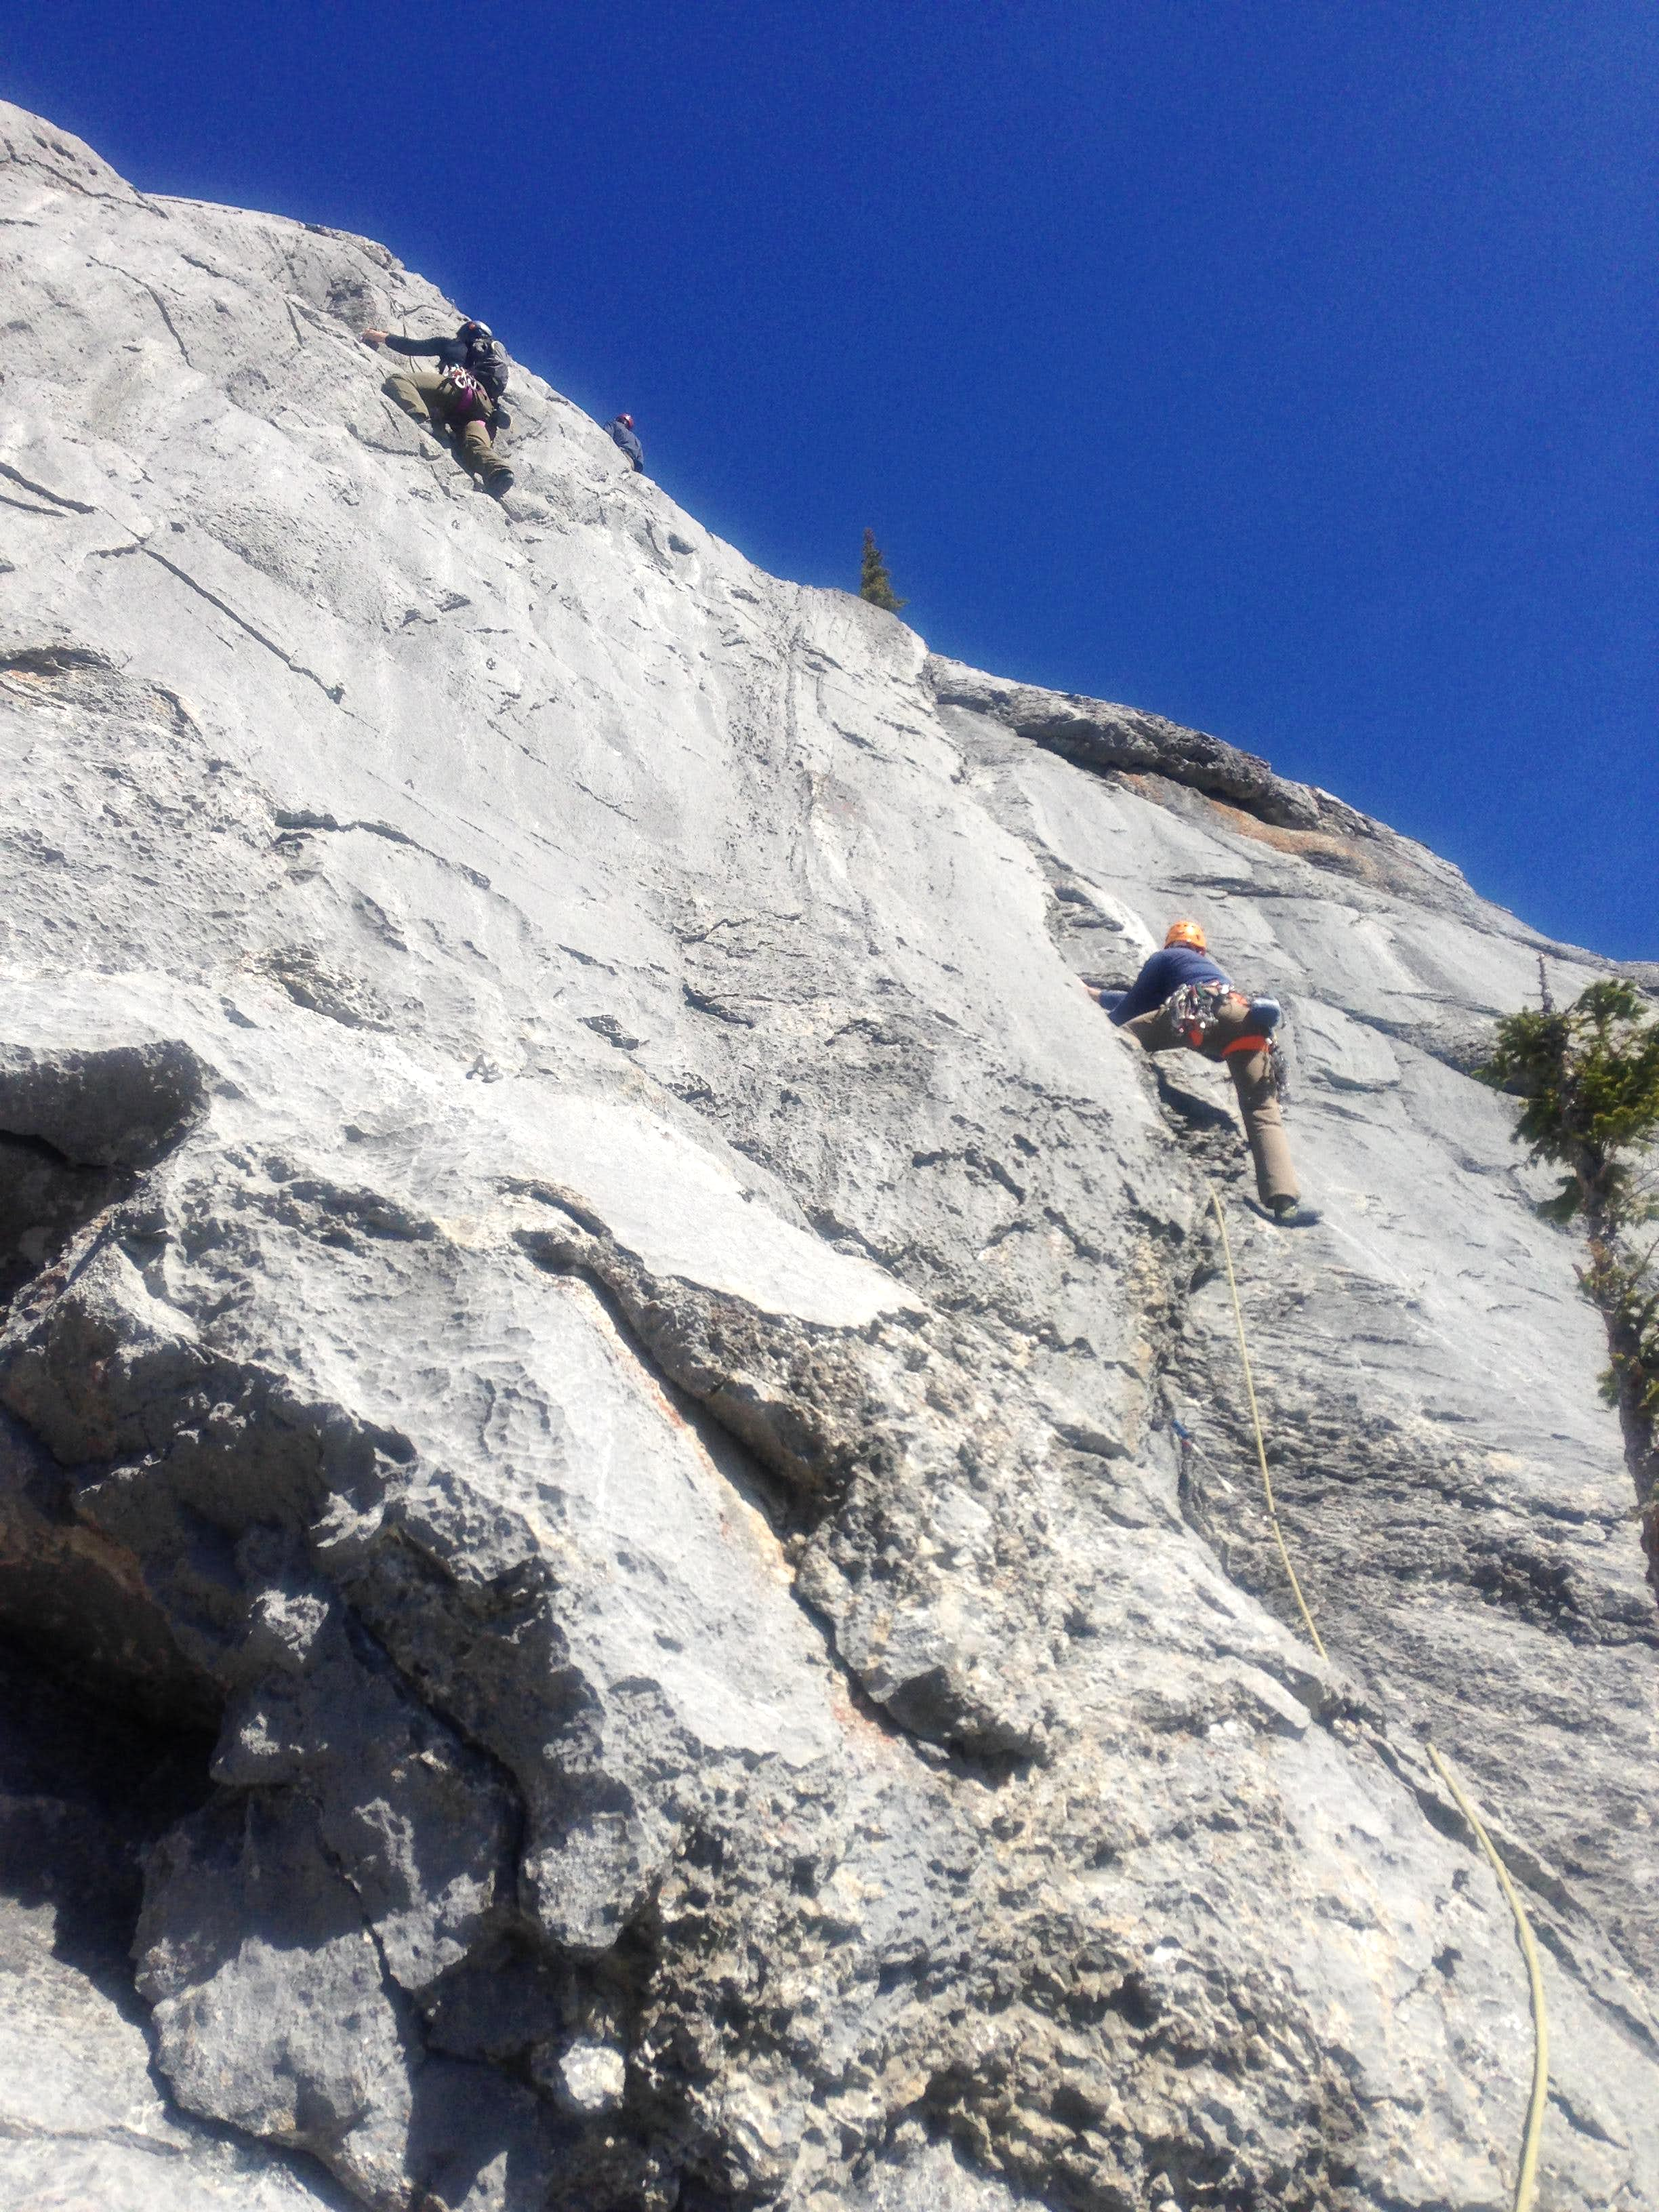 T Bam Crack - 5.9, 30 m (1 pitch)